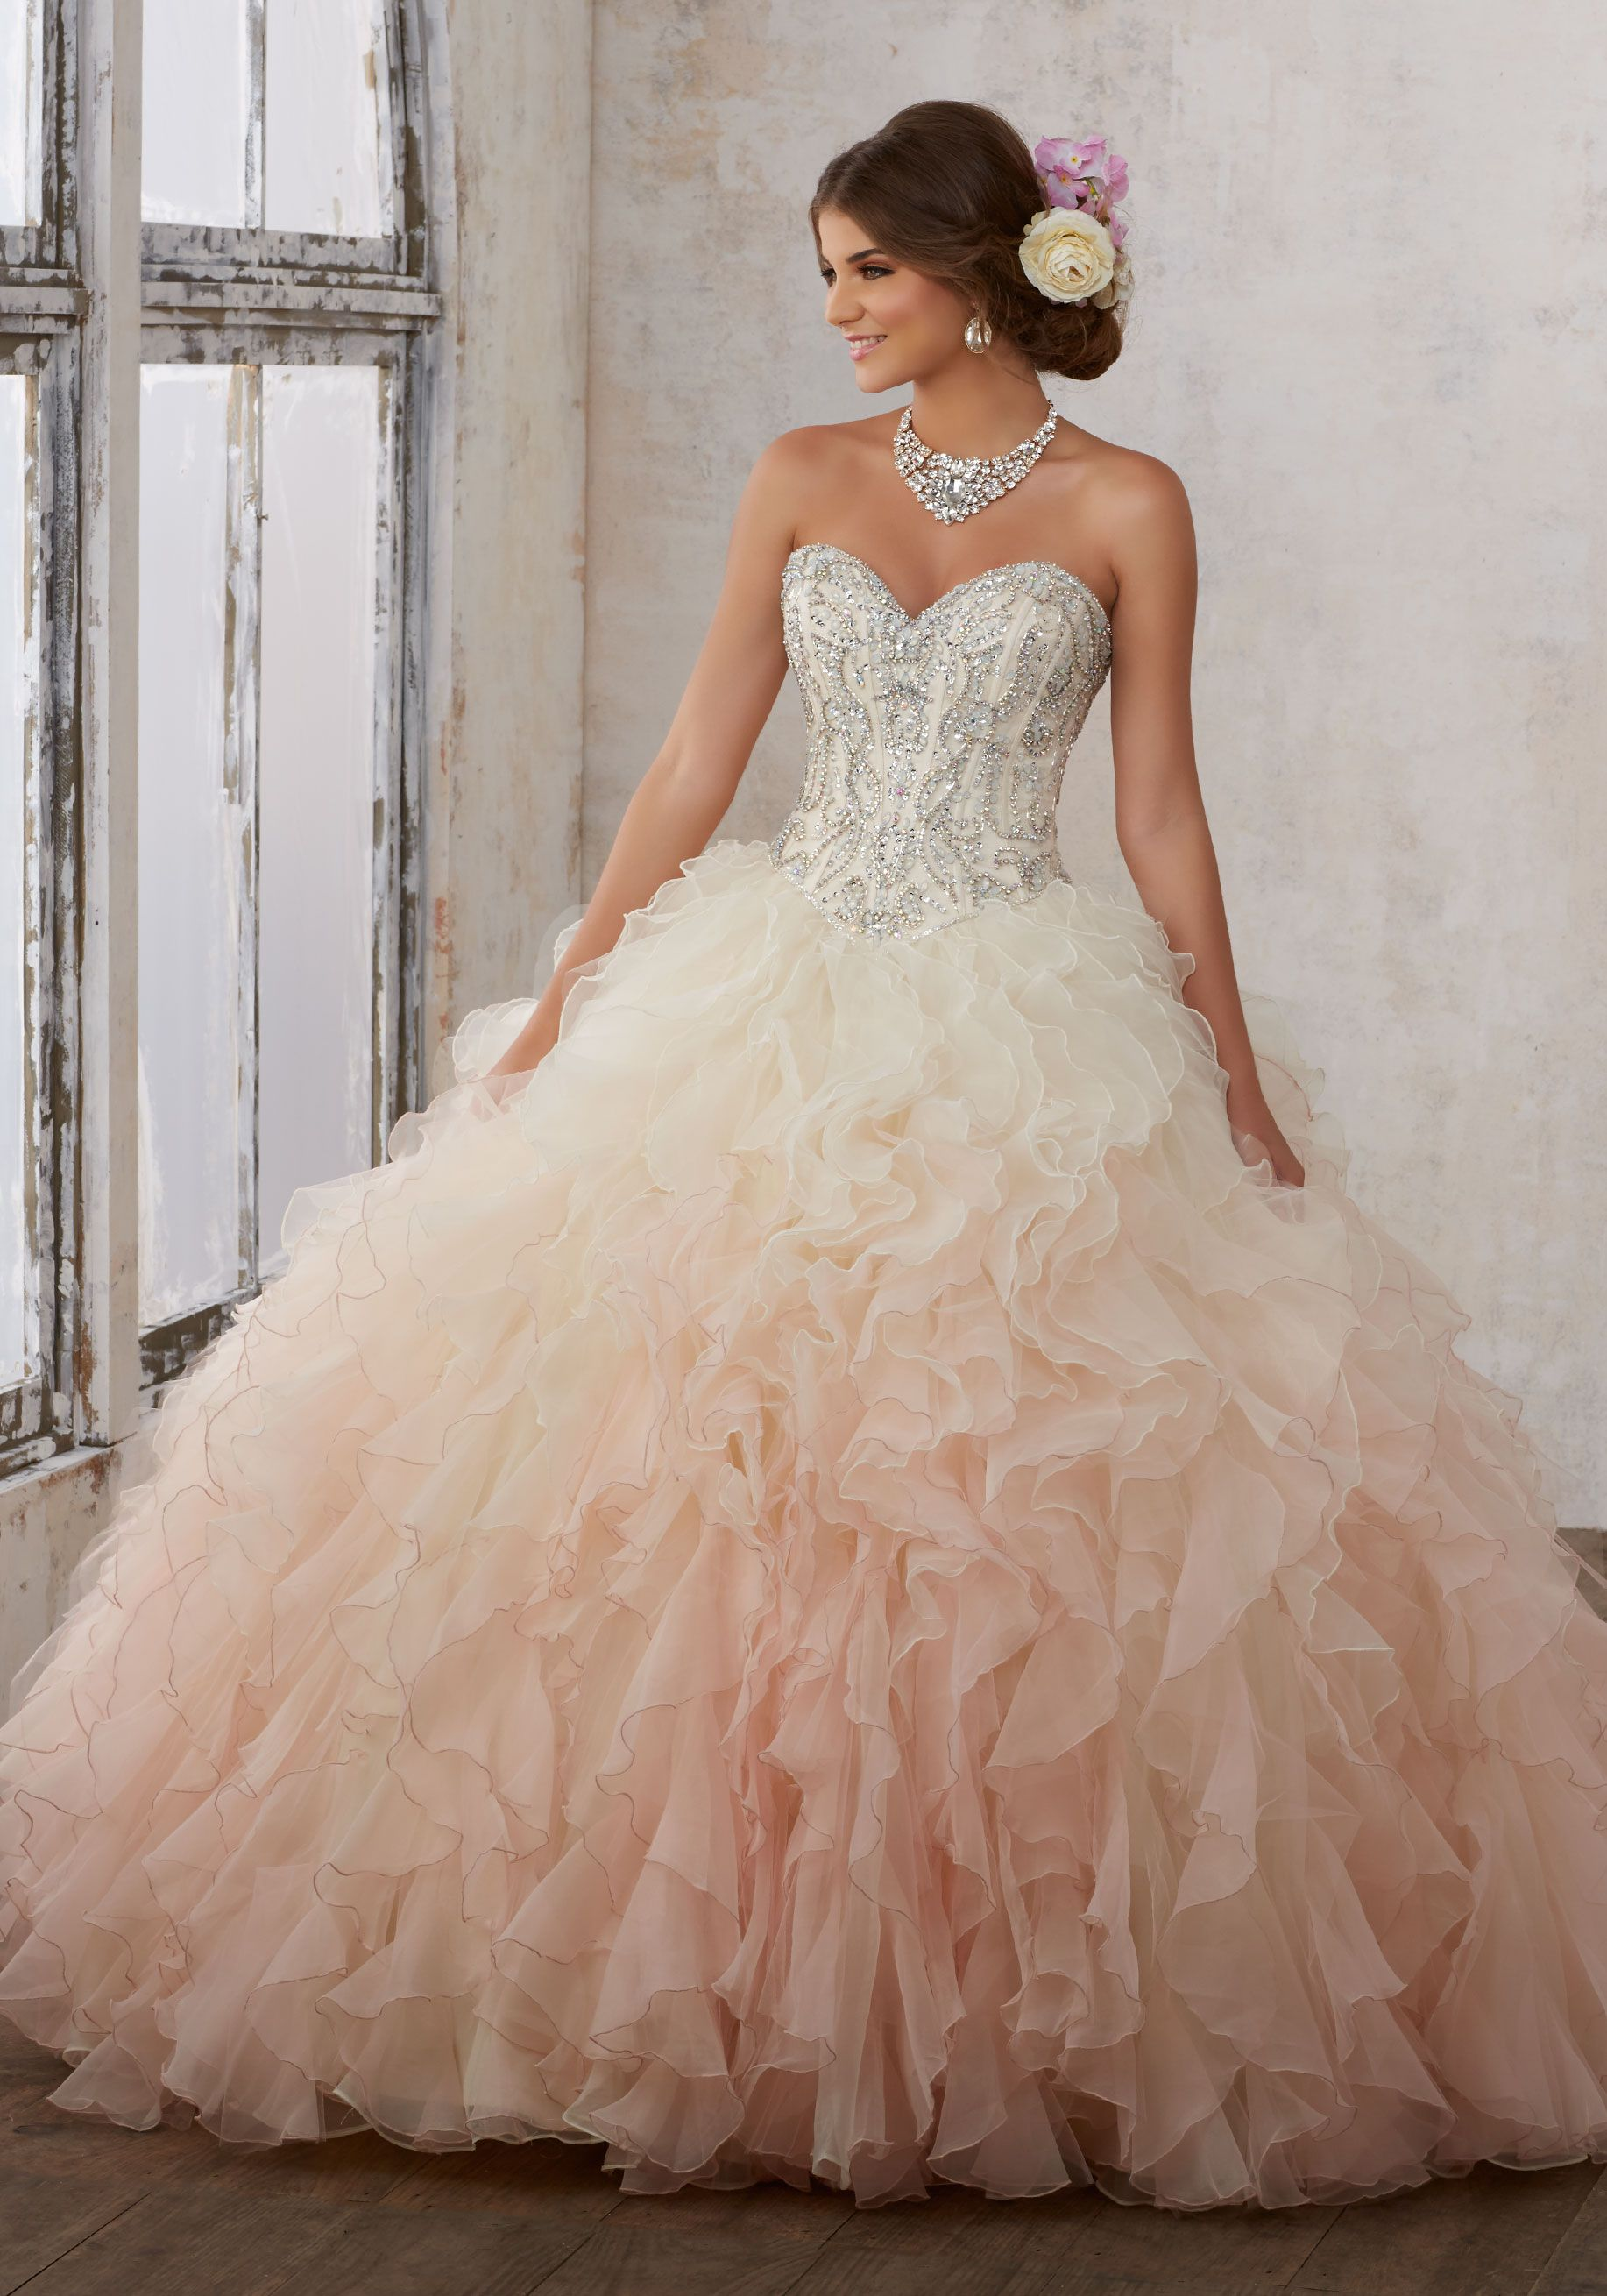 b6350bcb303 Moonstone Jeweled Beading on a Ruffled Organza Ballgown ...